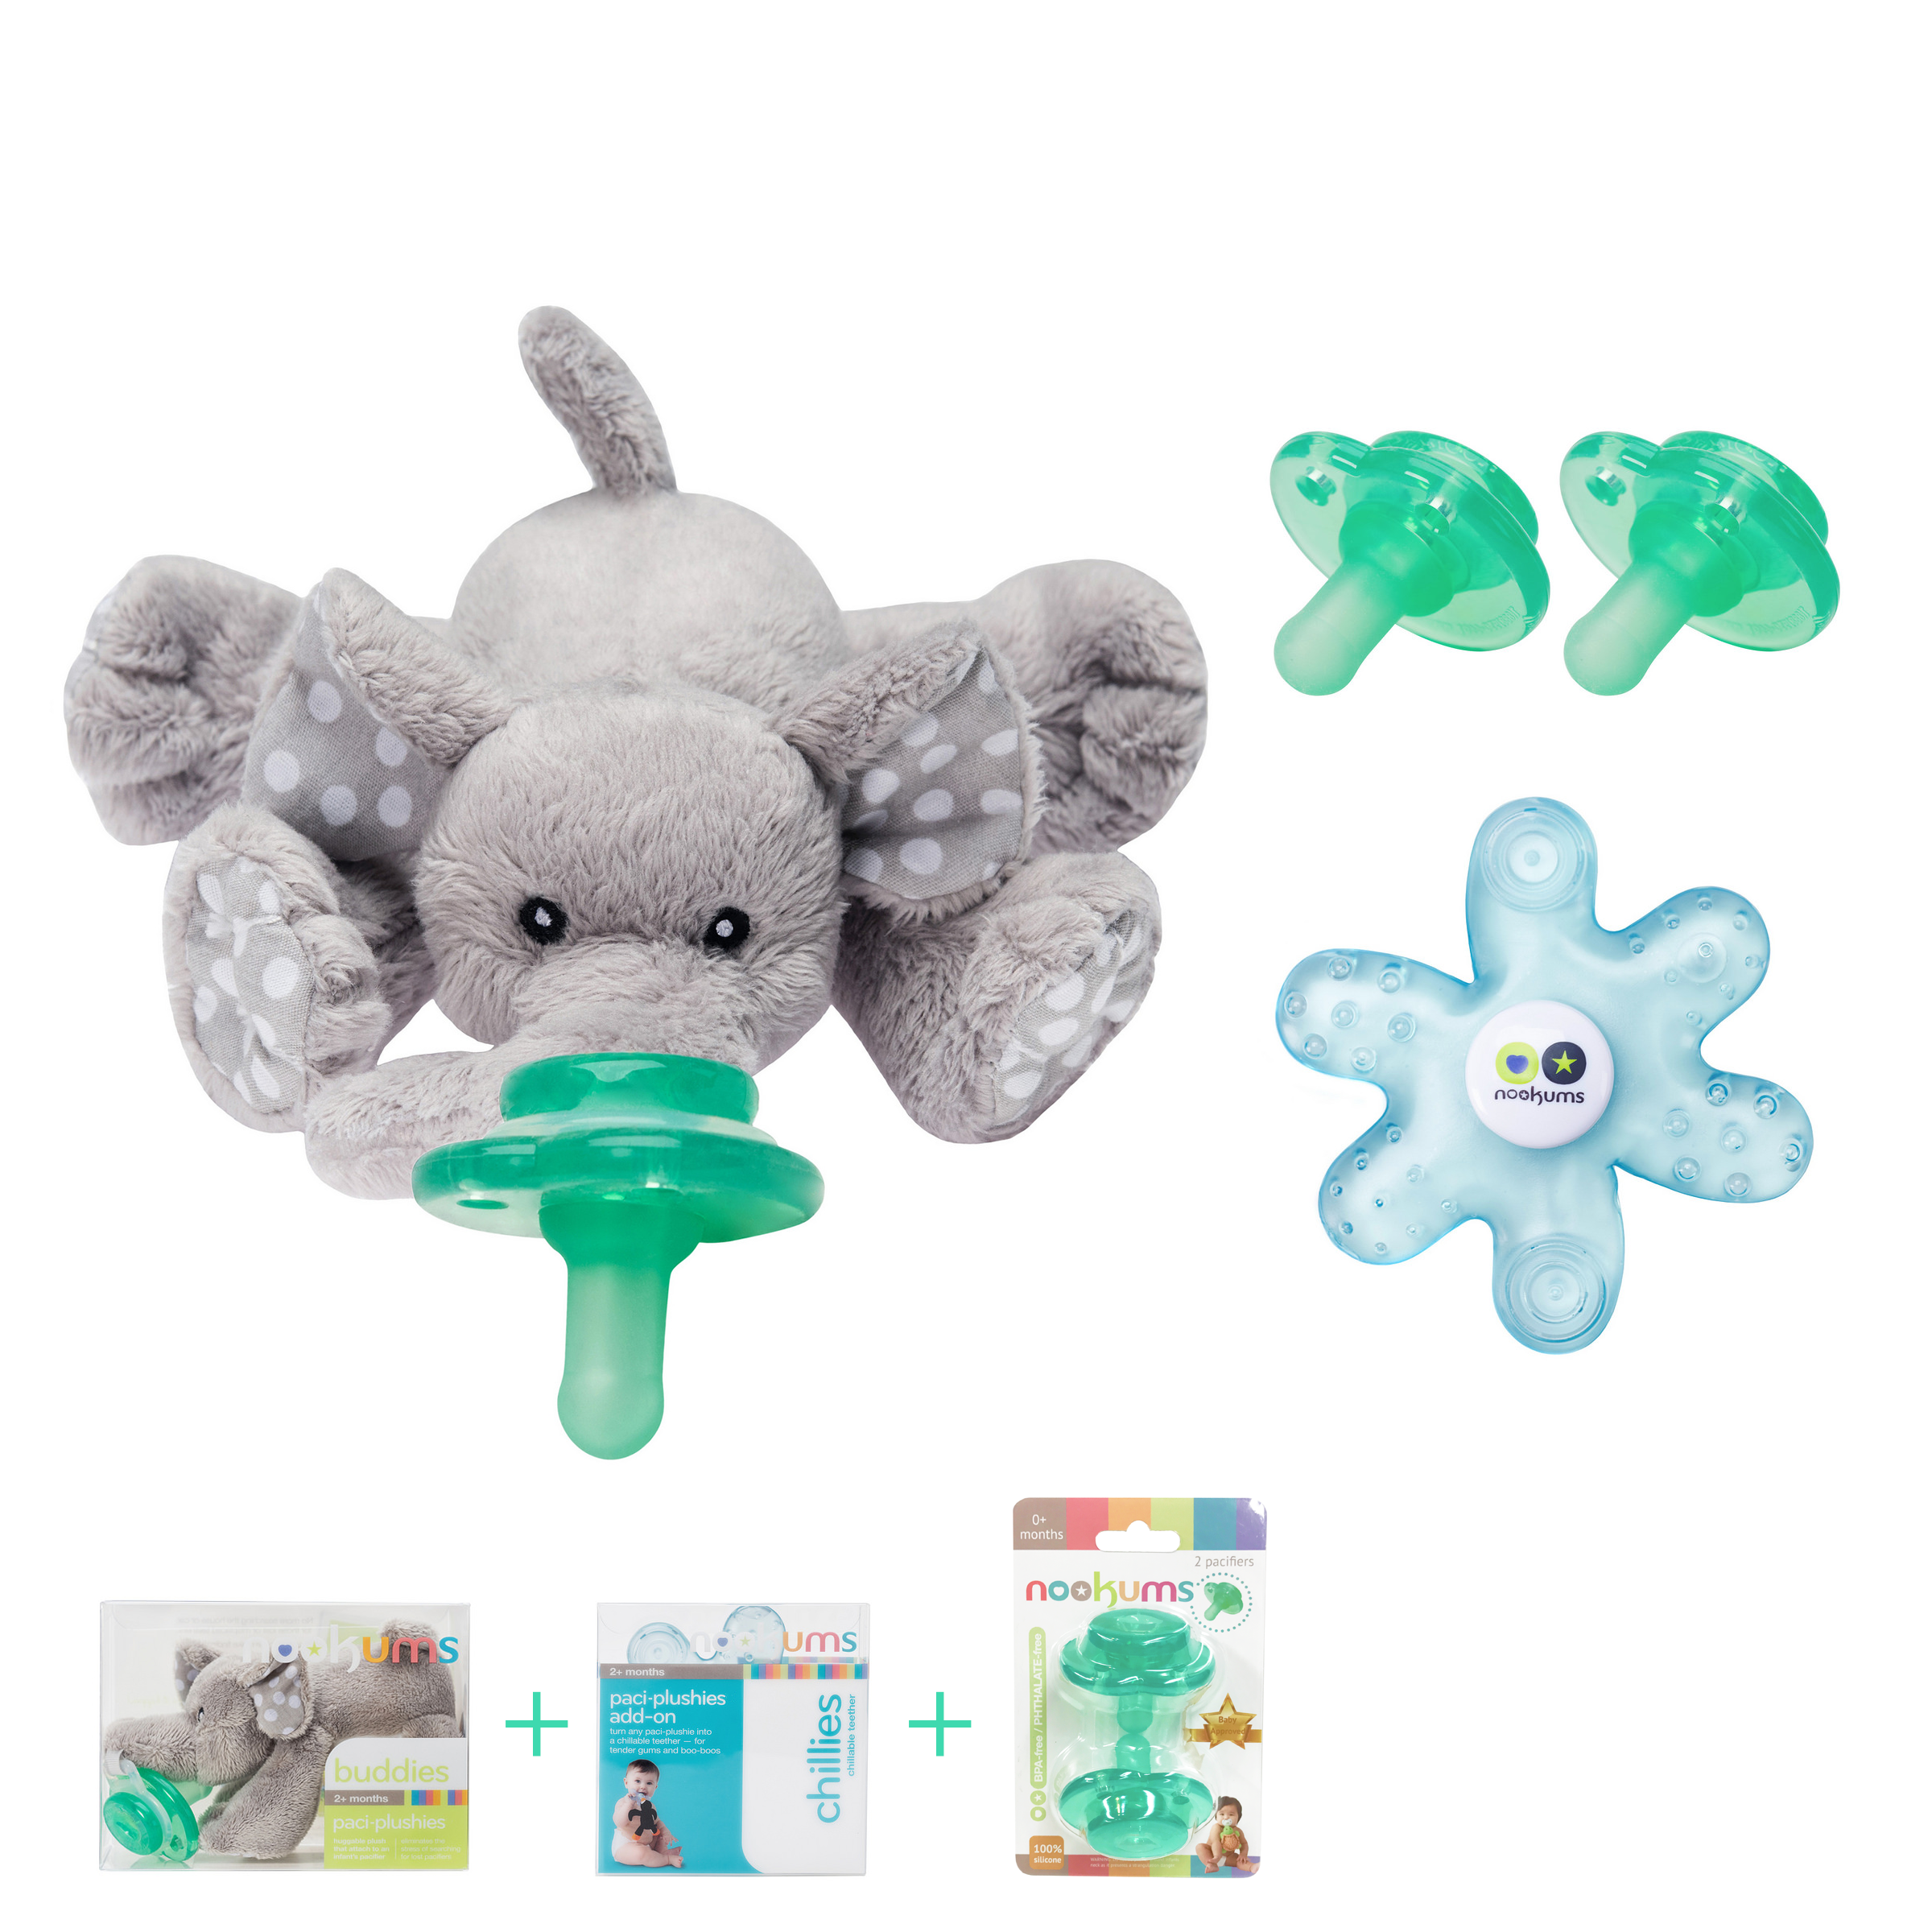 Nookums Paci Plushies Elephant Baby Gift Set Pacifier Holder Teether And Replacement Pacifier 2 Pack Plush Toy Includes Detachable Pacifier Use With Multiple Brand Name Pacifiers Walmart Com Walmart Com